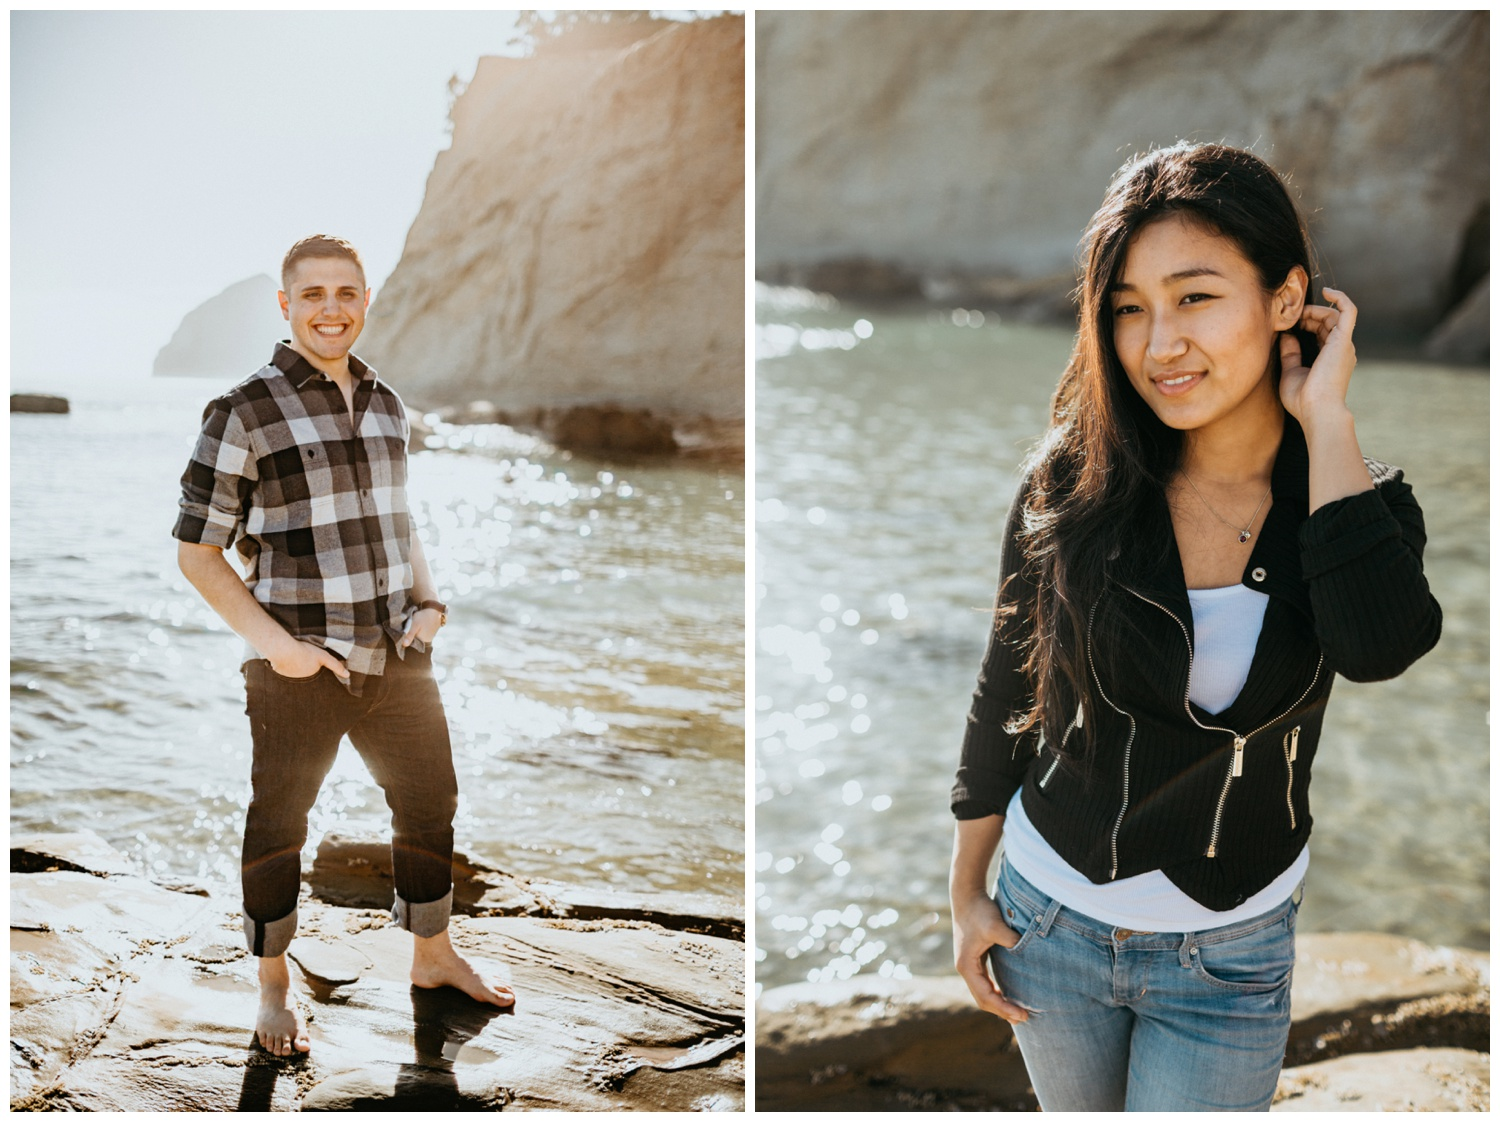 cape_kiwanda_beach_engagement_shoot_0040.jpg